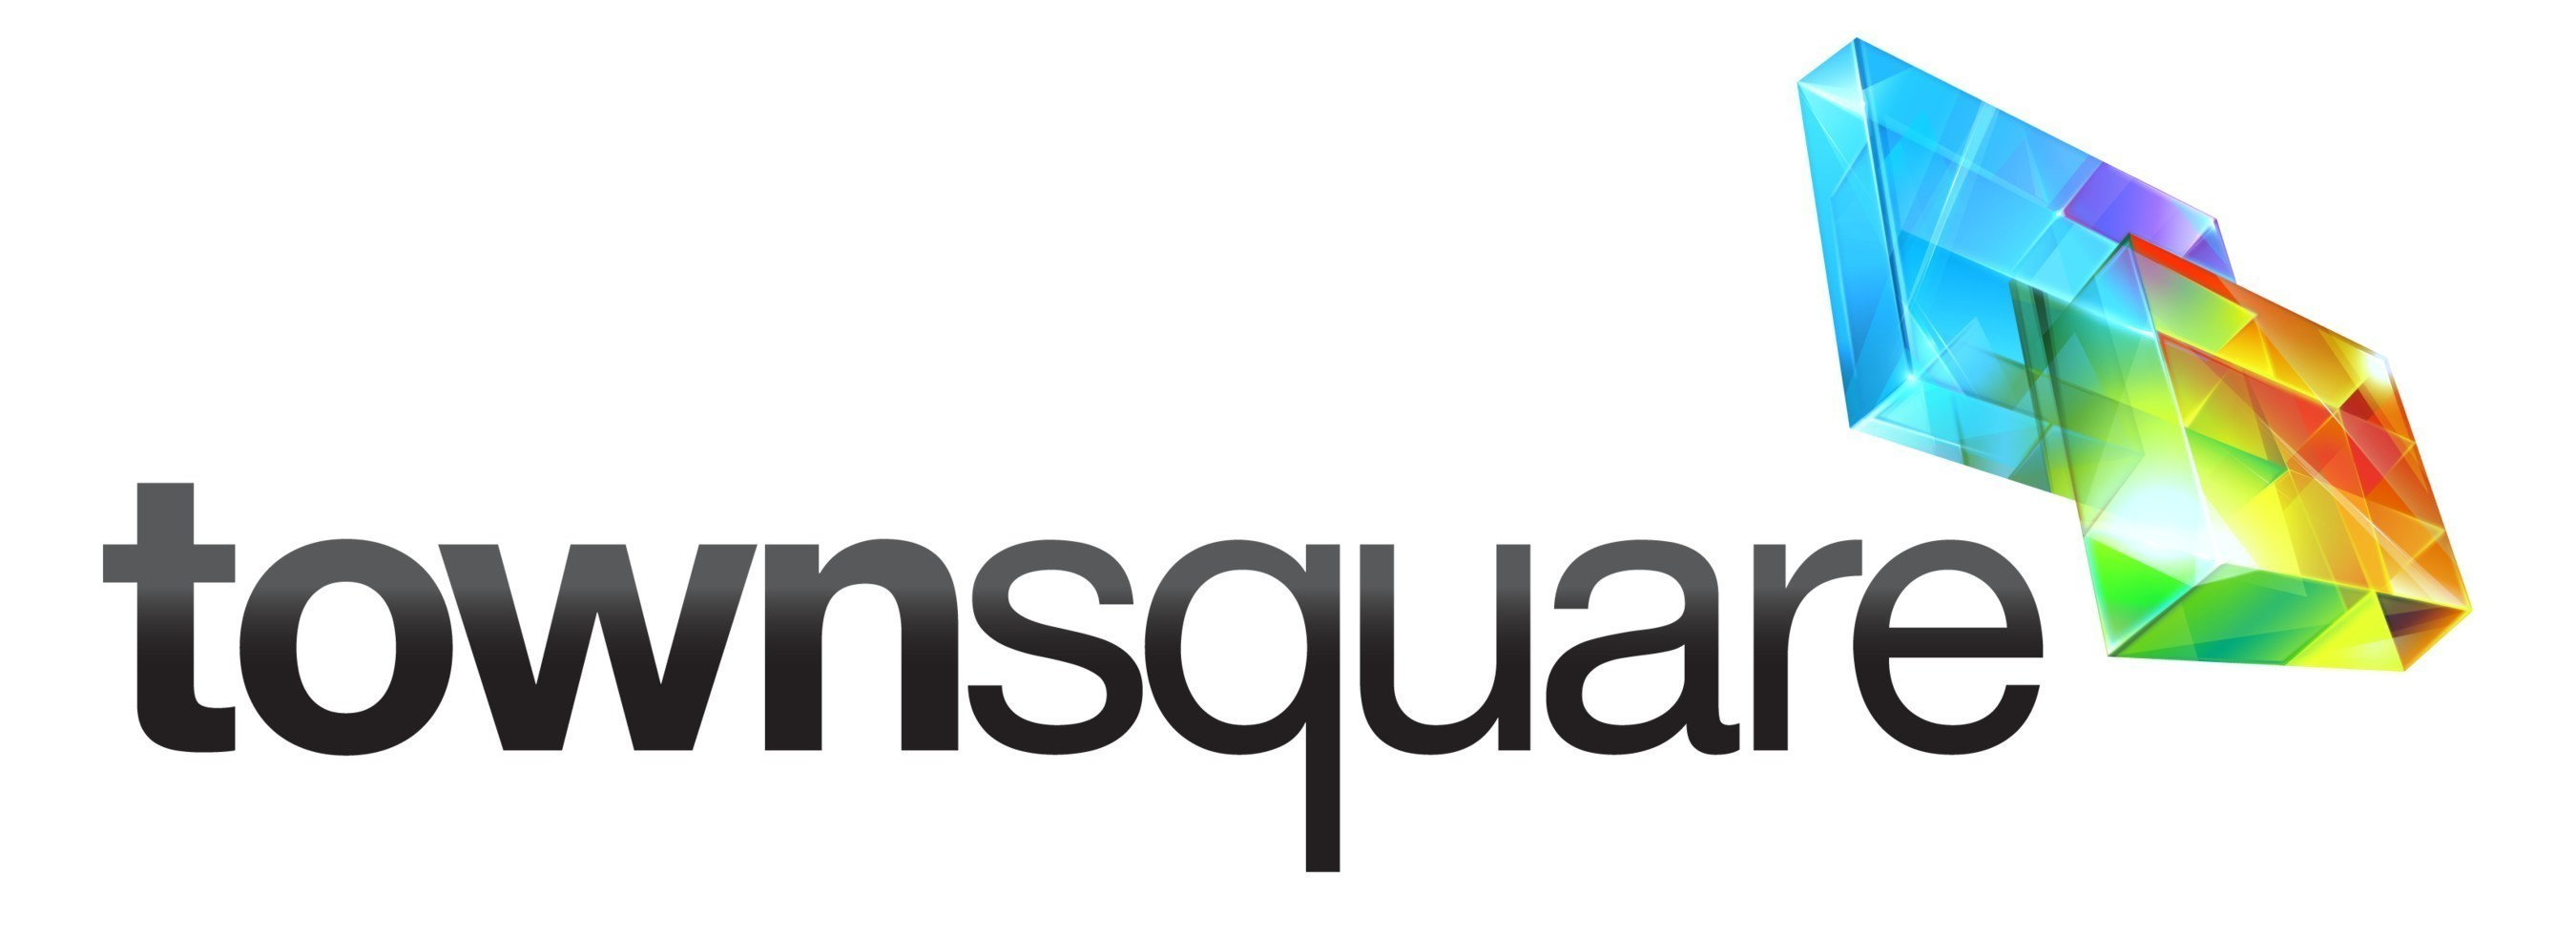 Townsquare Announces Conference Call To Discuss Third Quarter 2016 Results; Presenting At Upcoming Investor Conferences